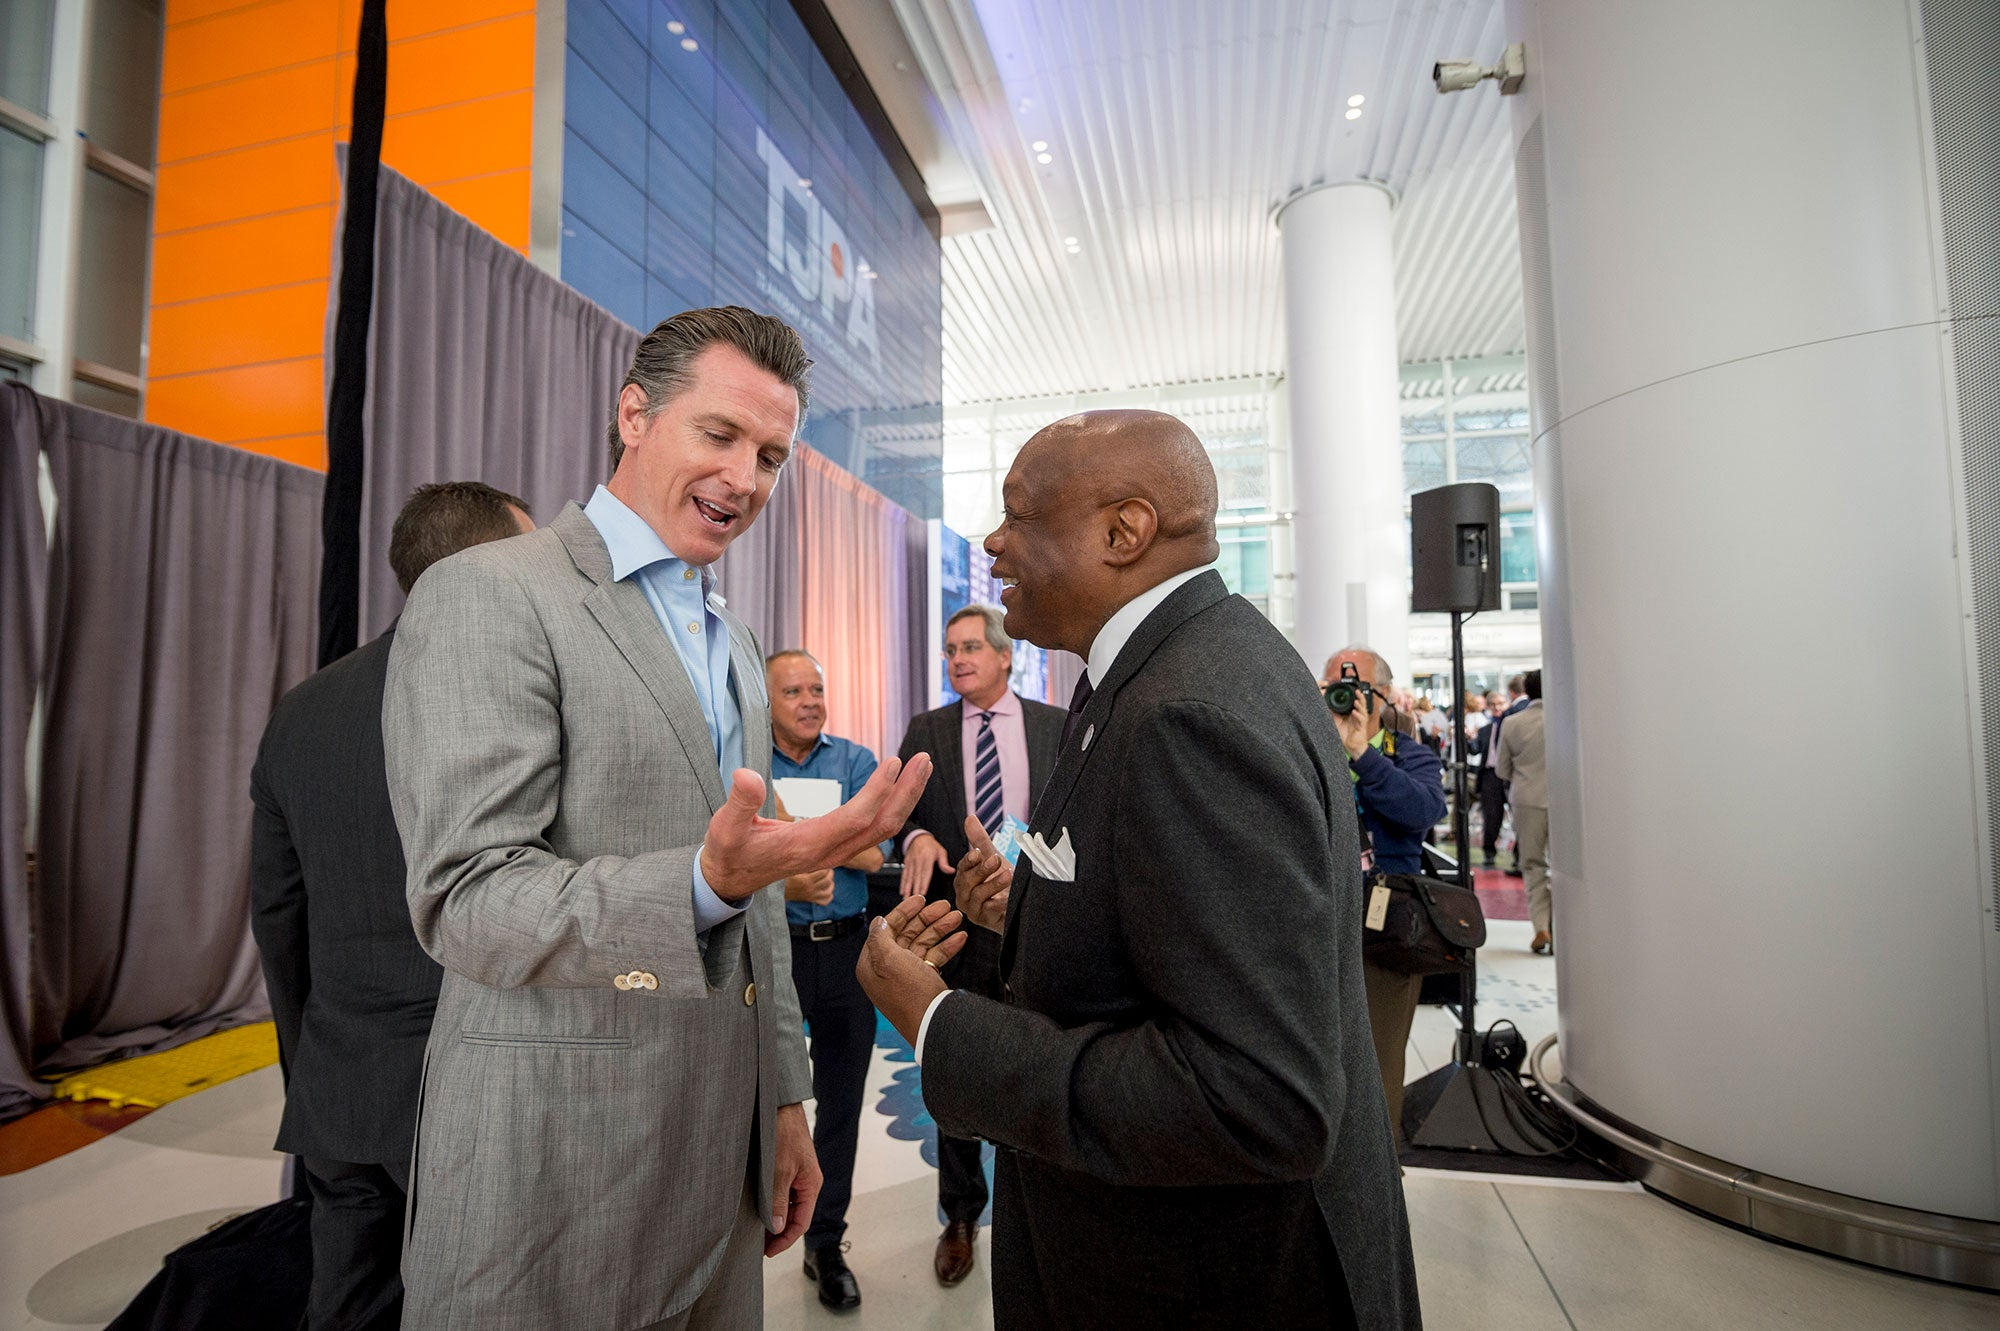 California Lieutenant Governor Gavin Newsom and former San Francisco Mayor Willie Brown